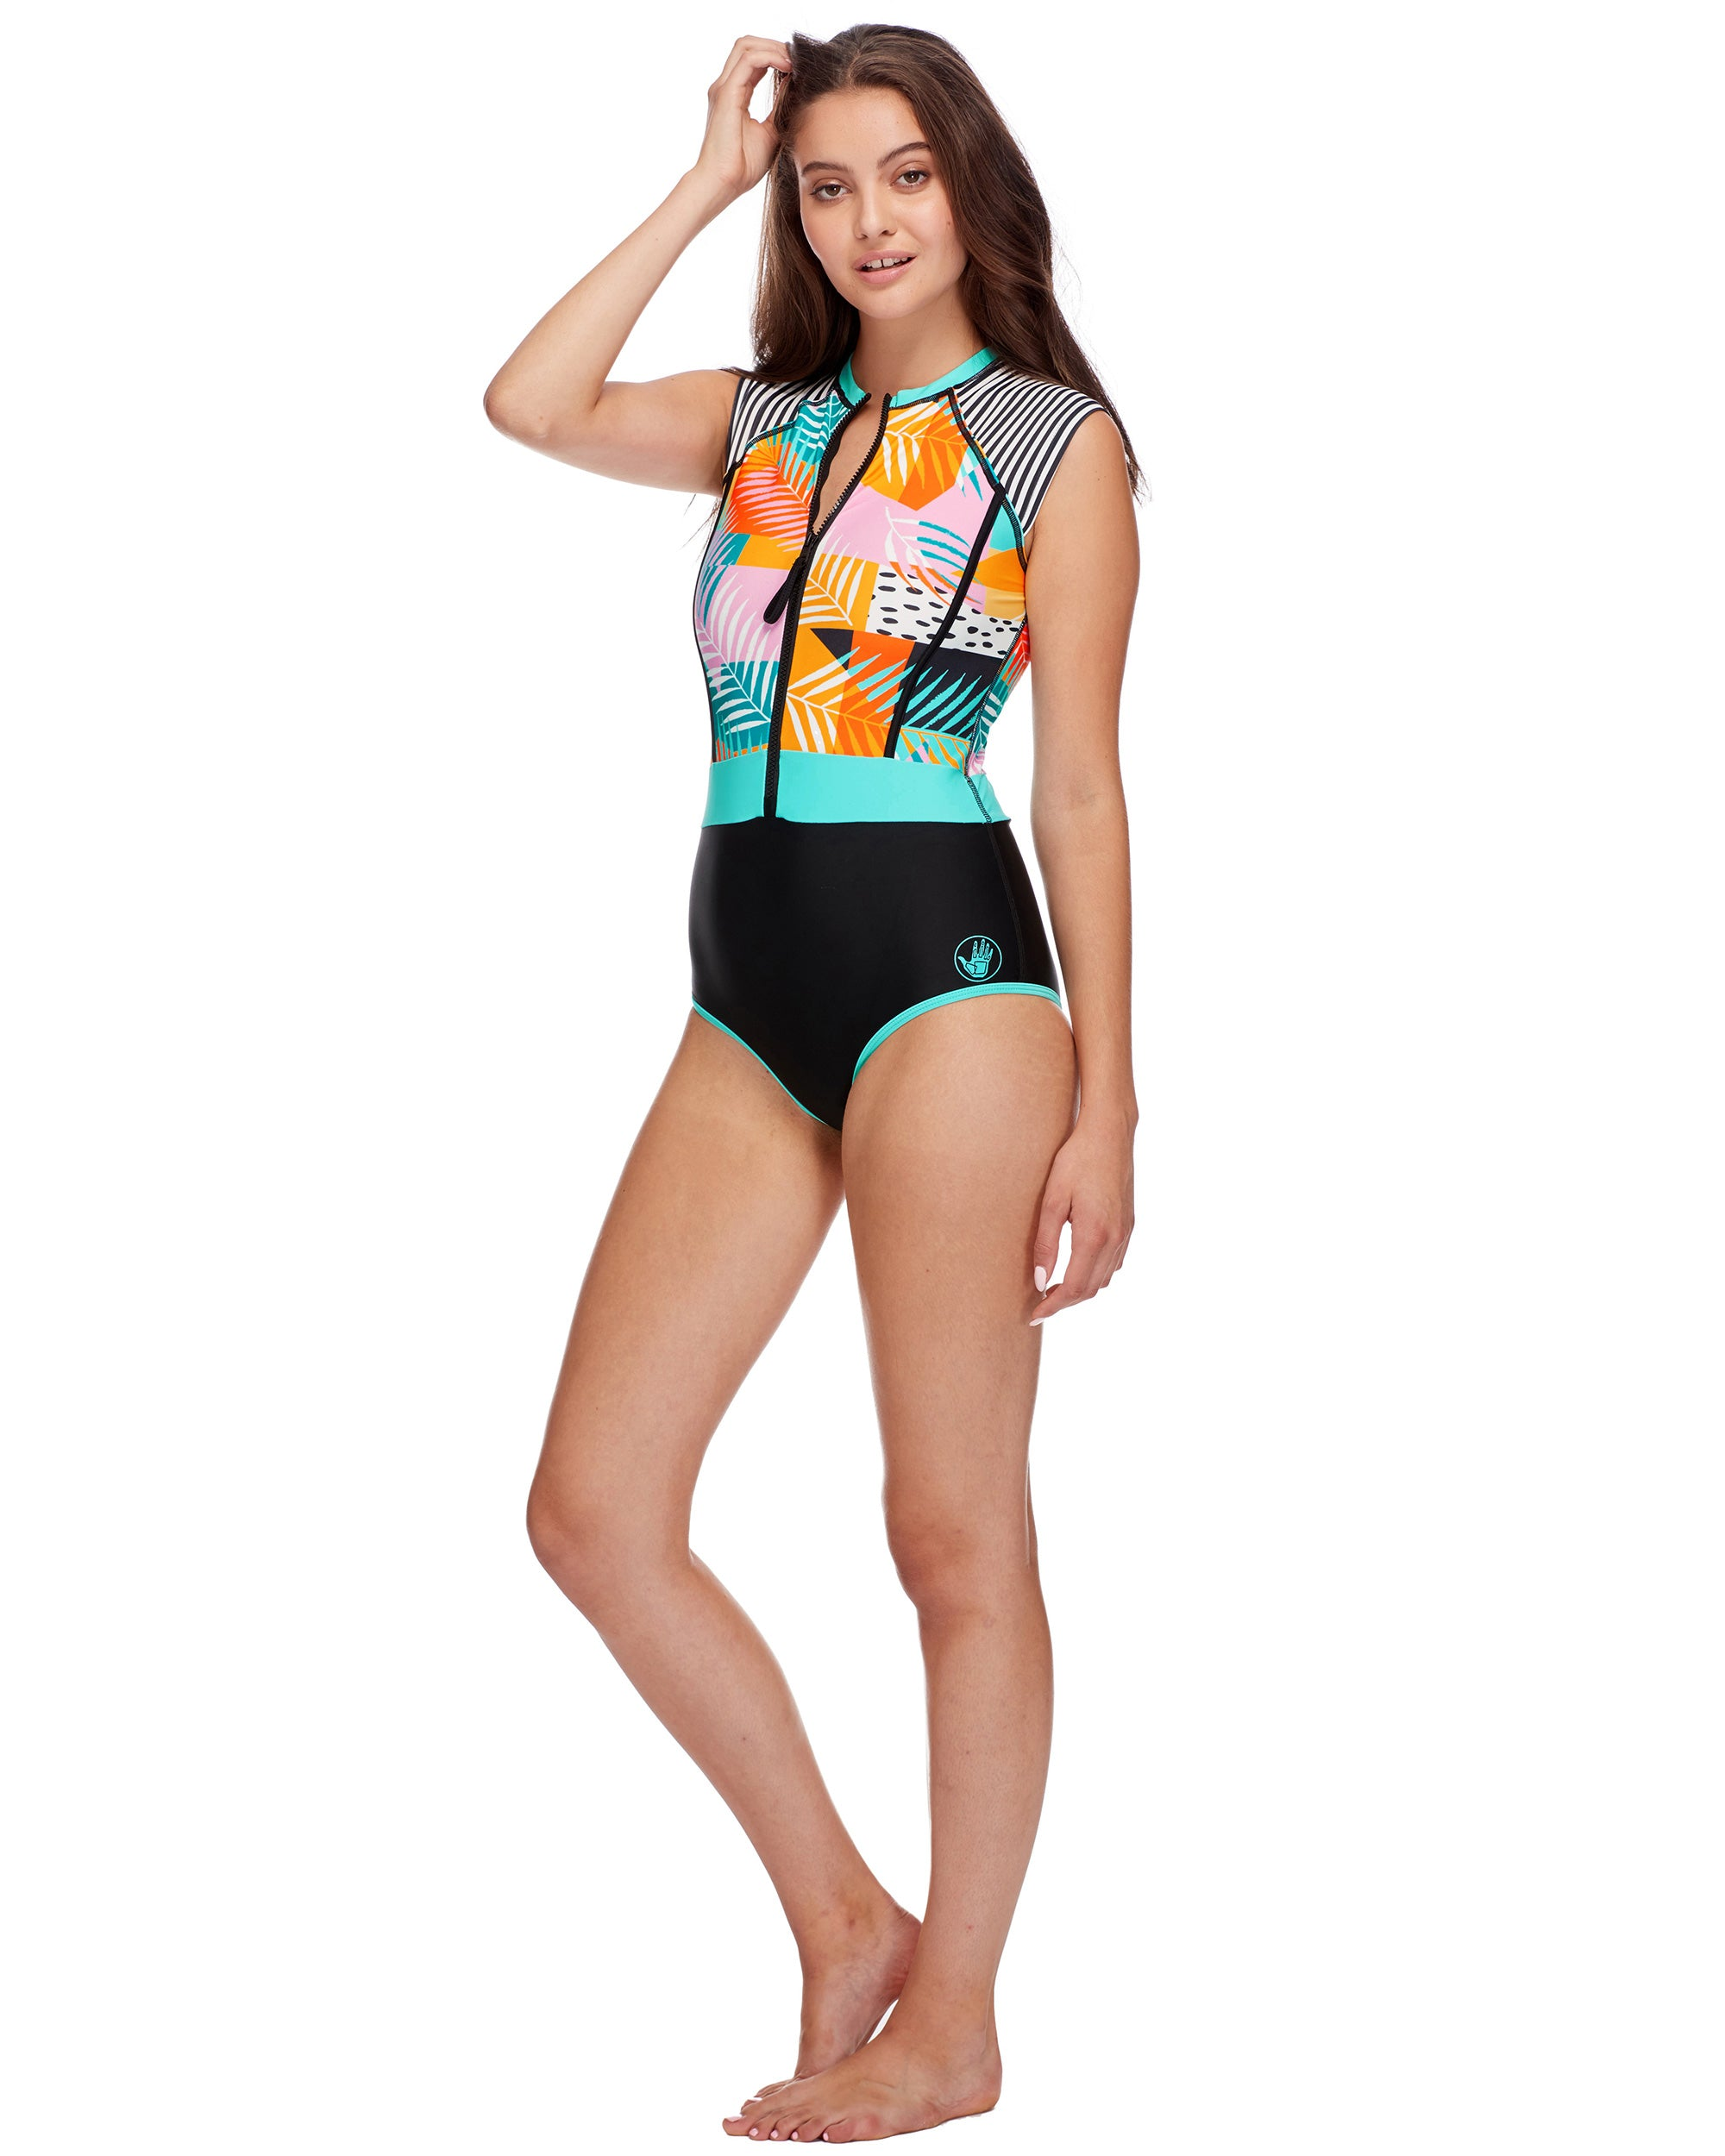 41bab958f4 Five Stand Up Paddle Suit - Multi – Body Glove